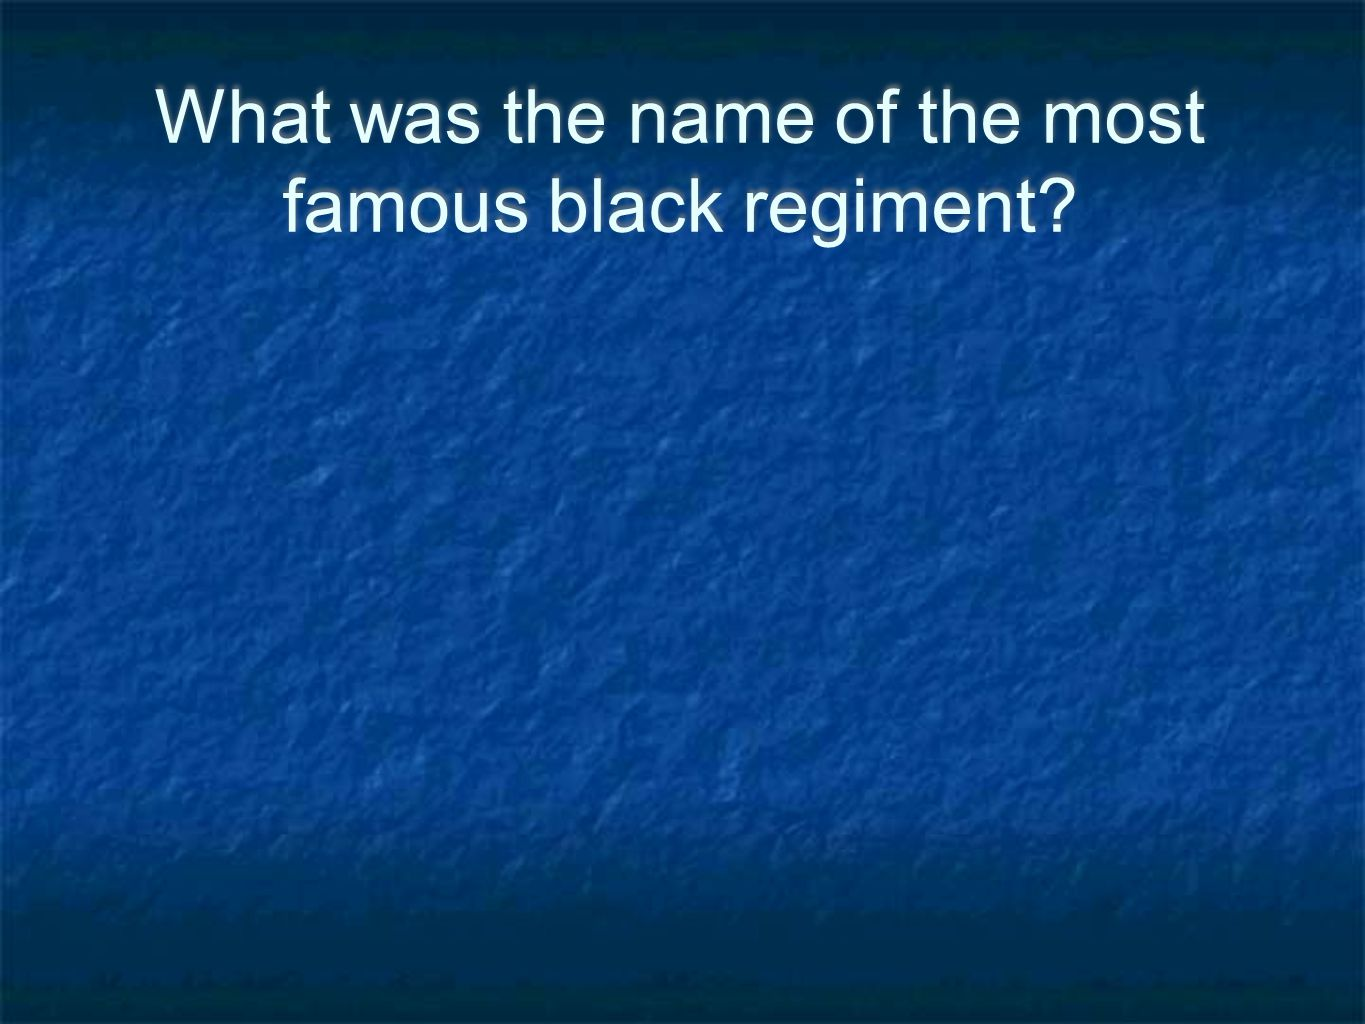 What was the name of the most famous black regiment